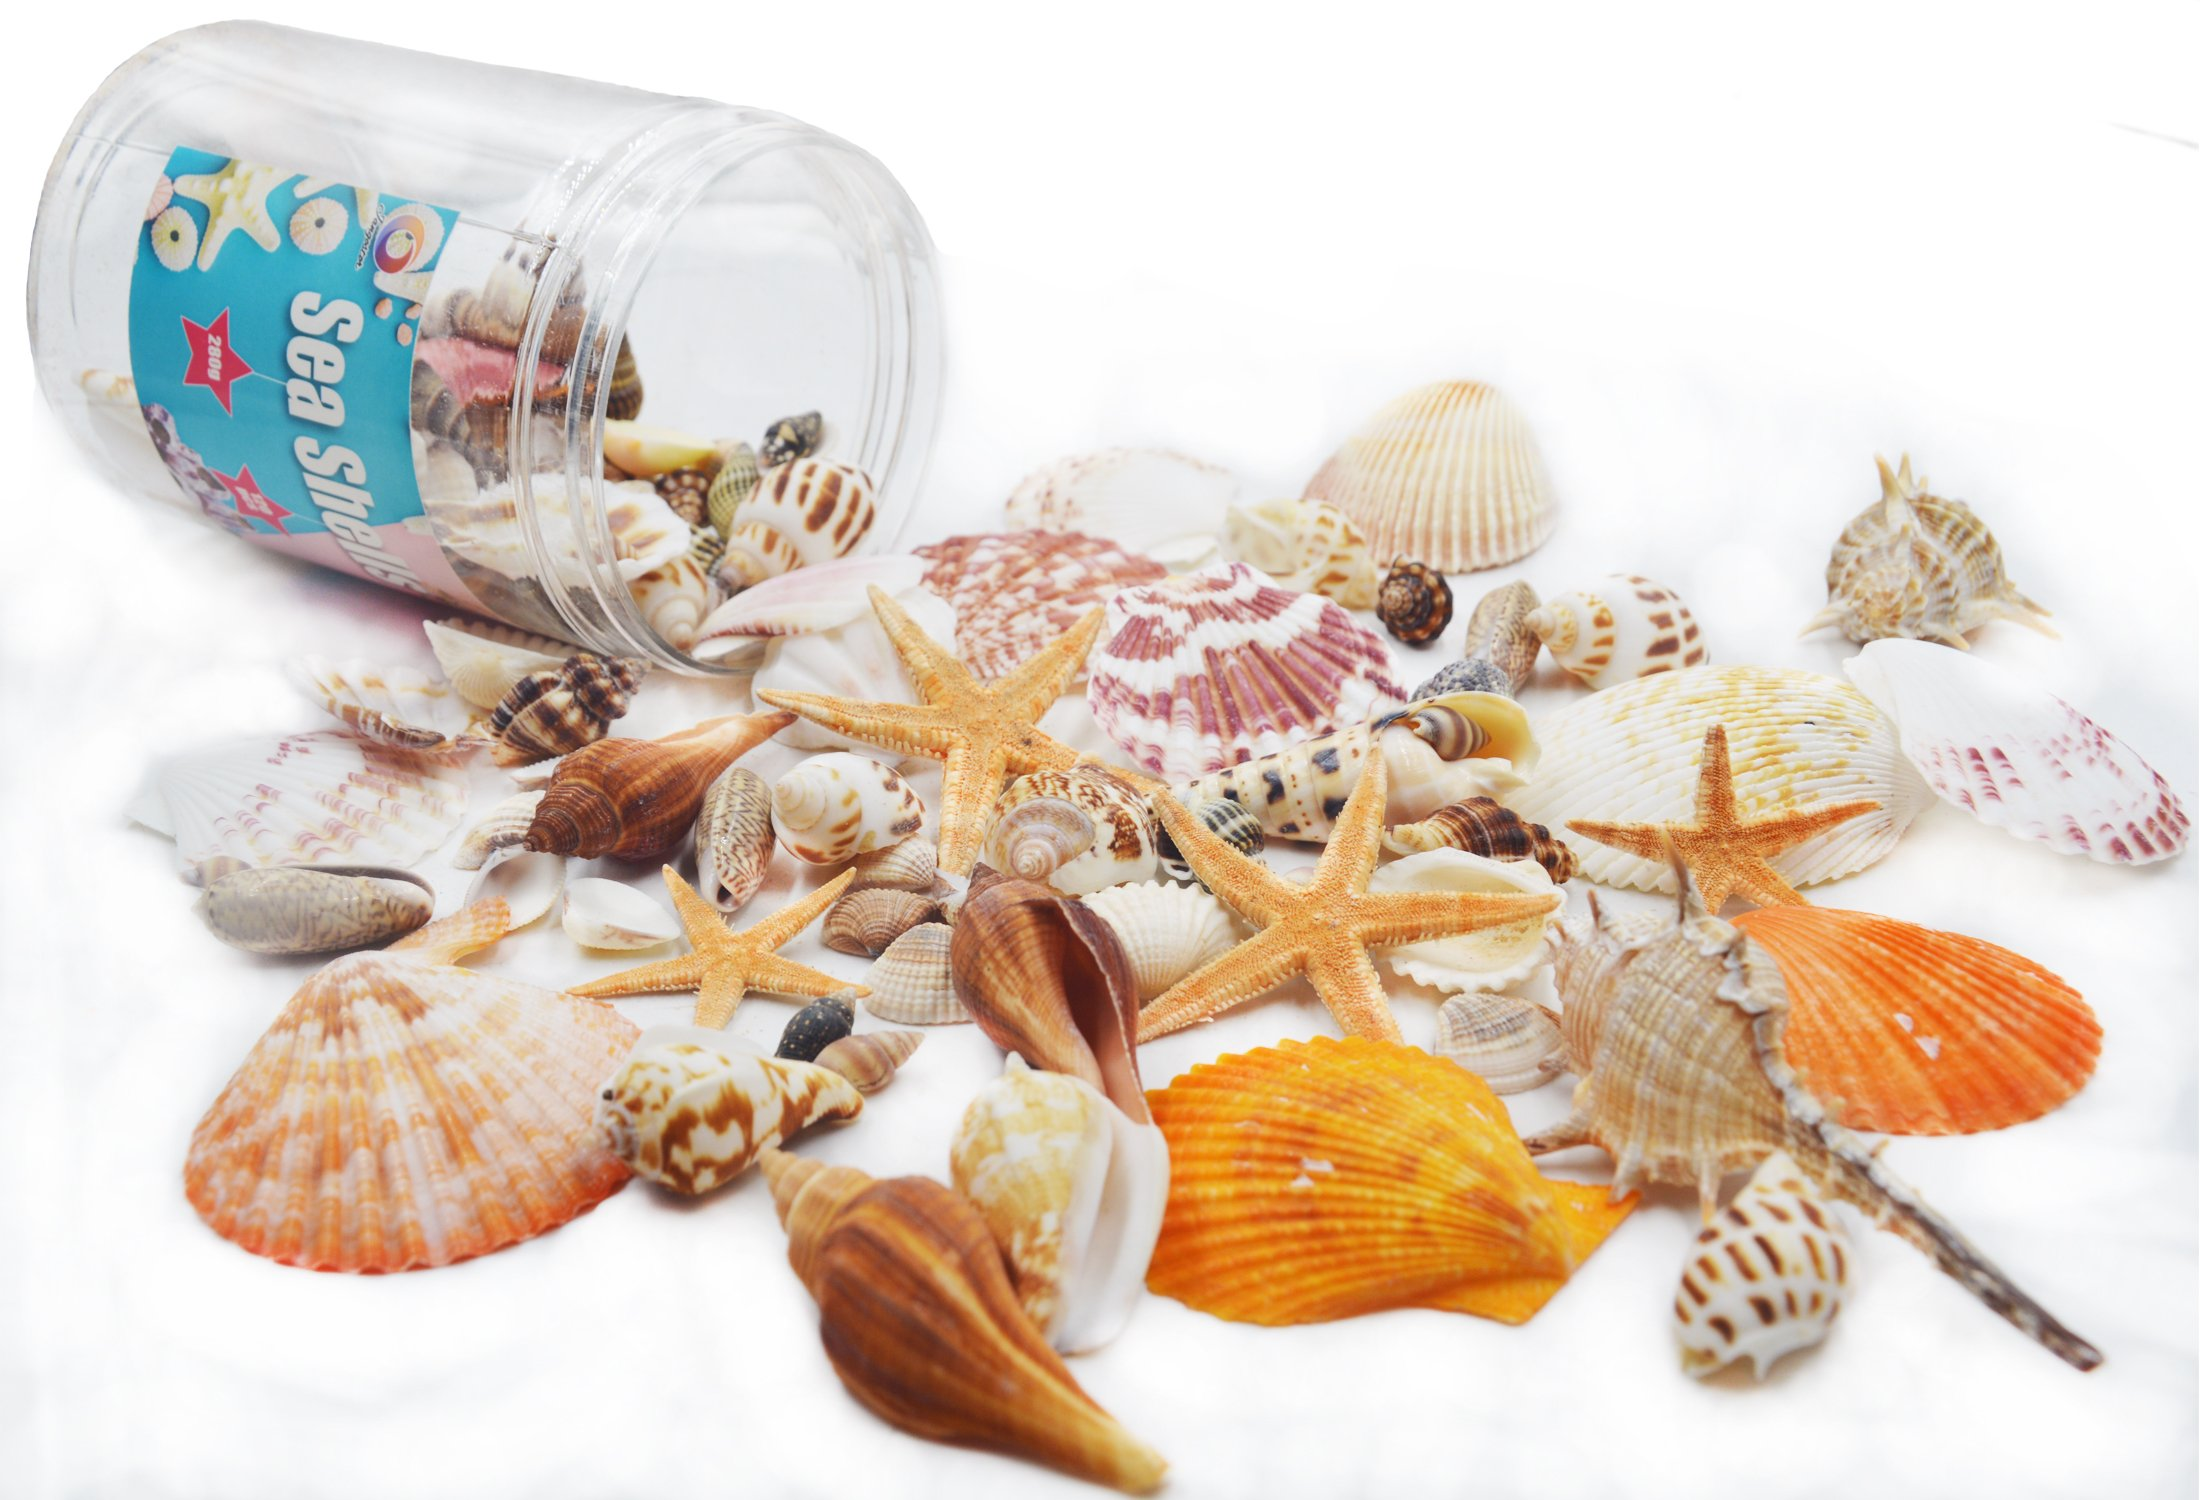 100PCS Sea Shells Bottle Mixed Ocean Beach Seashells-Natural Colorful Seashells Starfish Perfect for Vase Fillers,Wedding Decor Beach Theme Party , Home Decorations,DIY Crafts, Fish Tank,Candle Making